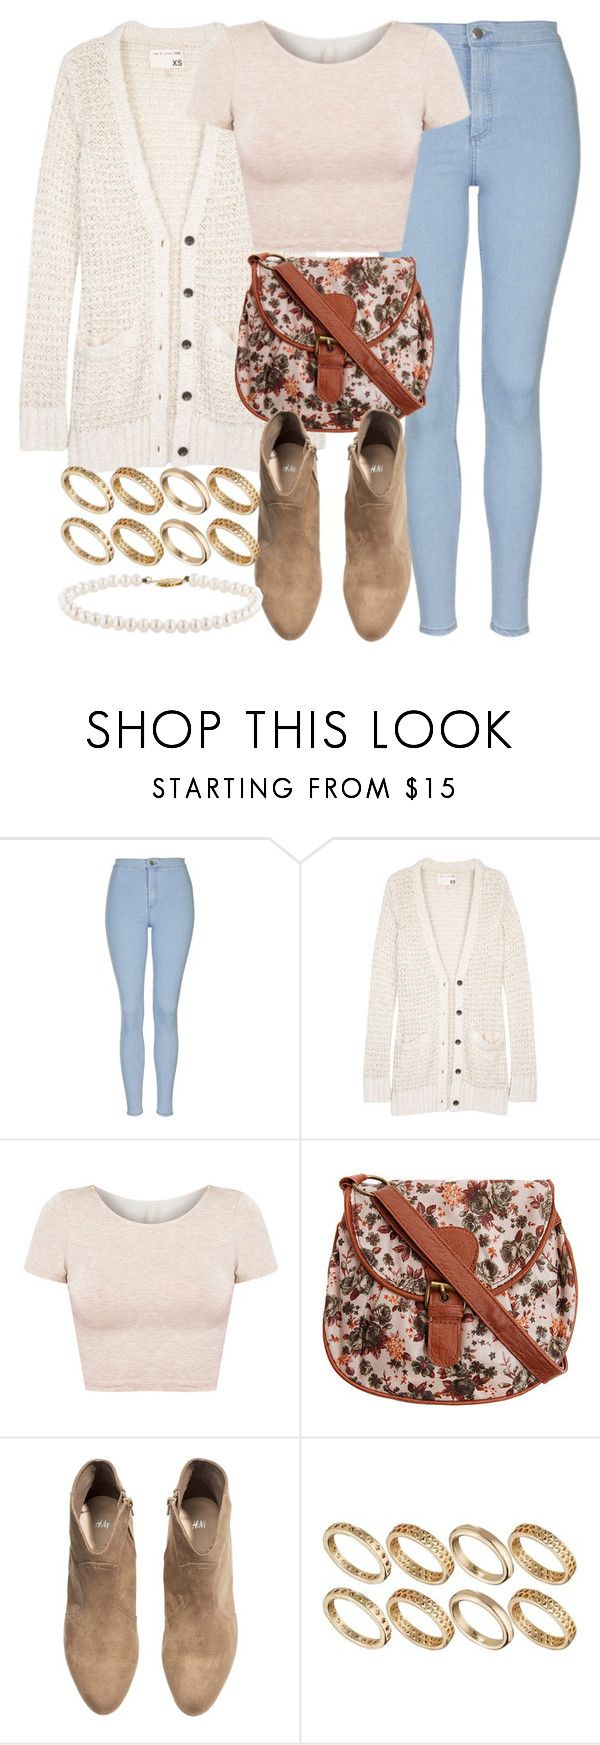 """""""Look #492"""" by foreverdreamt ❤ liked on Polyvore featuring Topshop, rag & bone, American Apparel, Dorothy Perkins, H&M, ASOS, women's clothing, women, female and woman"""